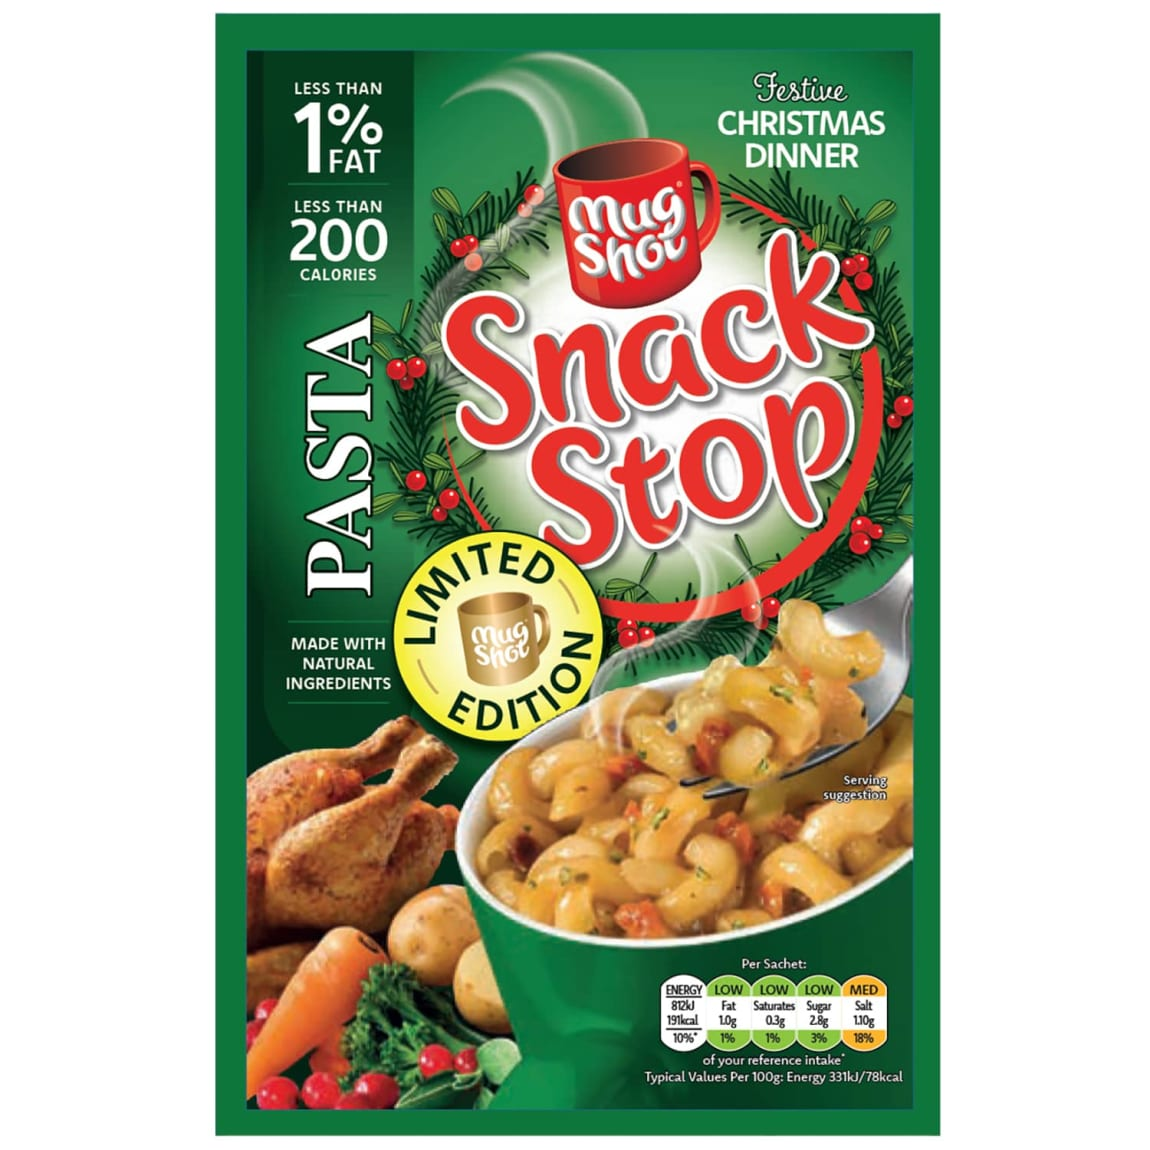 Mug Shot Snack Stop Christmas Dinner Pasta 60g